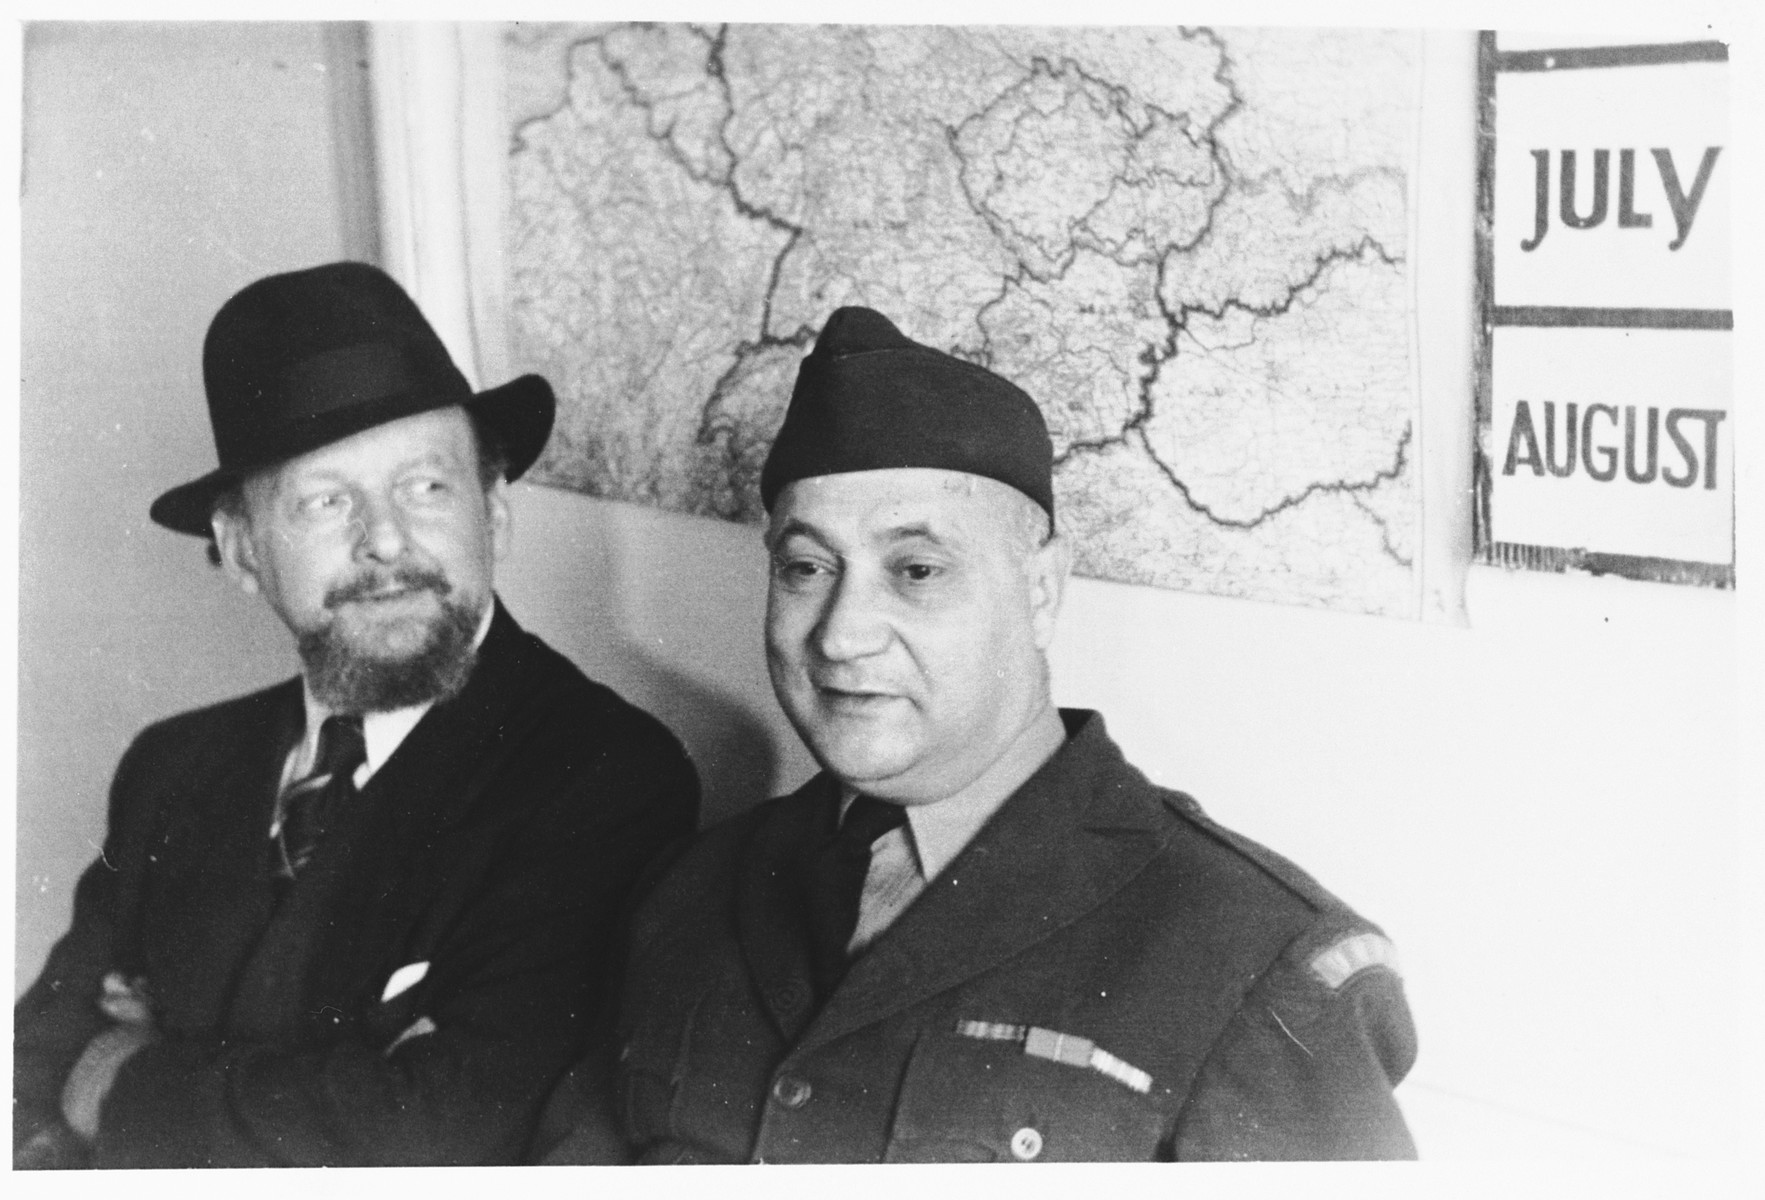 UNRRA camp director Harold Fishbein poses with a civilian in front of a map of Europe in the Schlachtensee displaced persons camp.